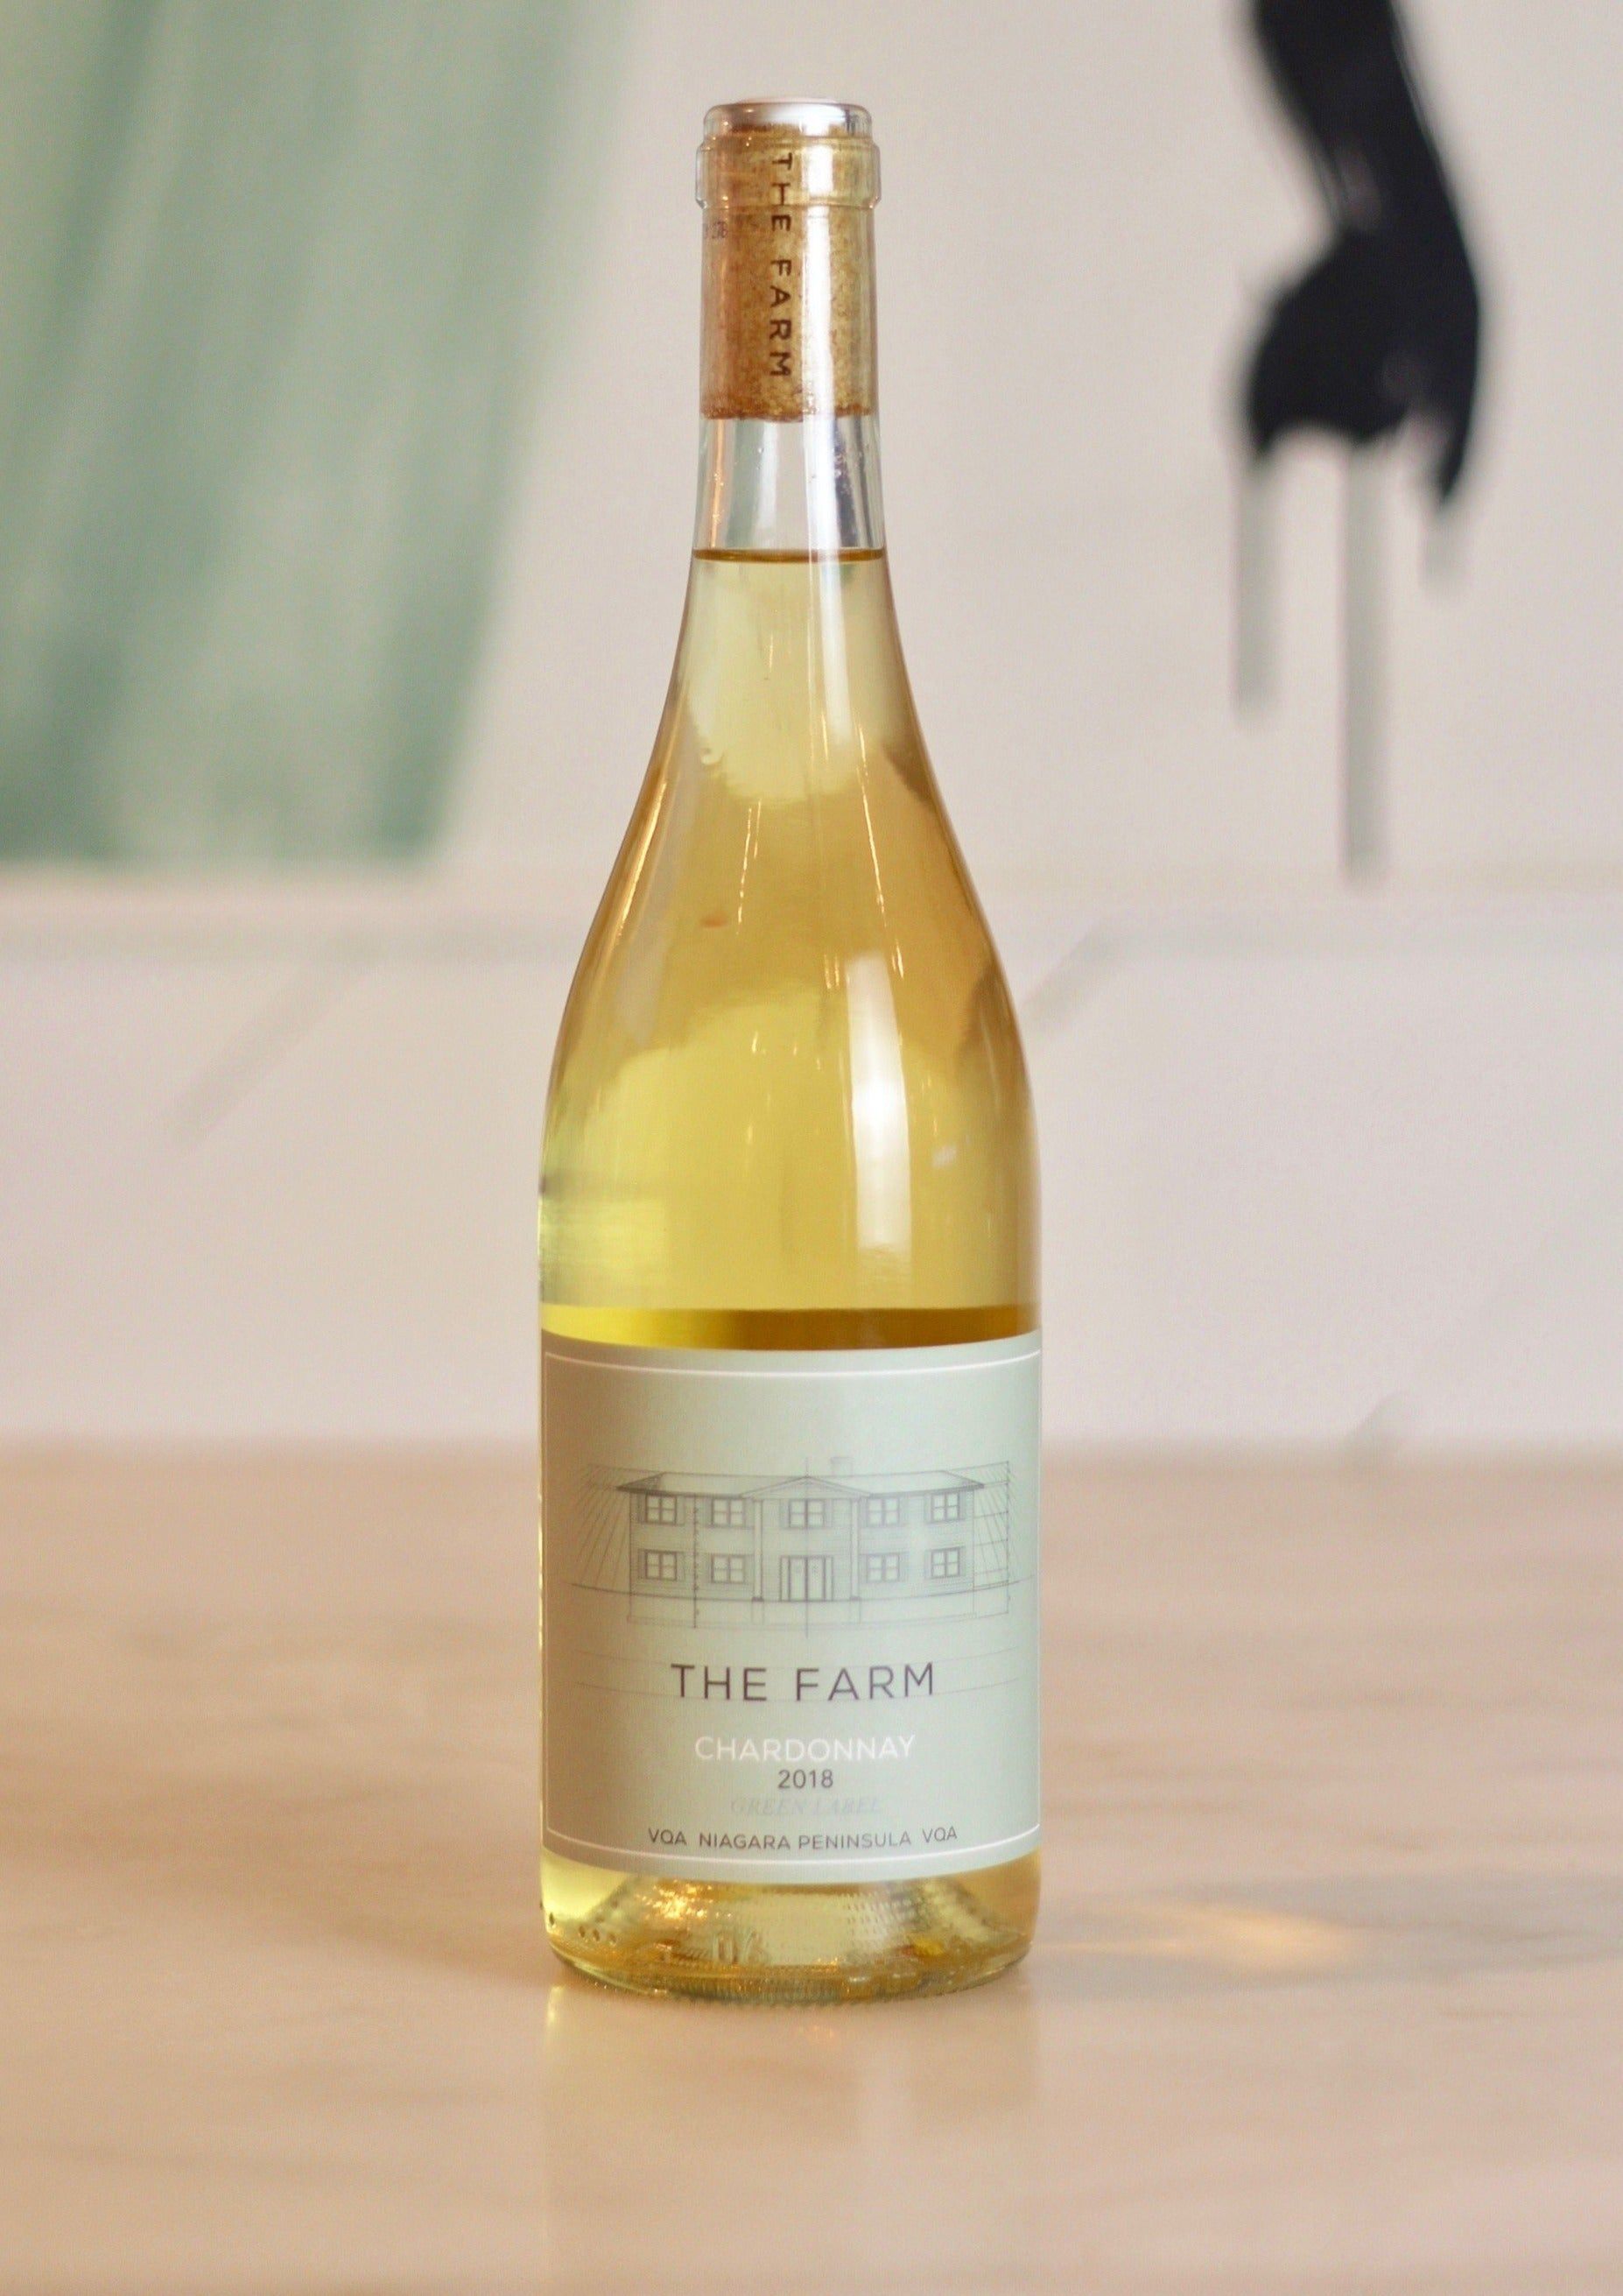 THE FARM CHARDONNAY